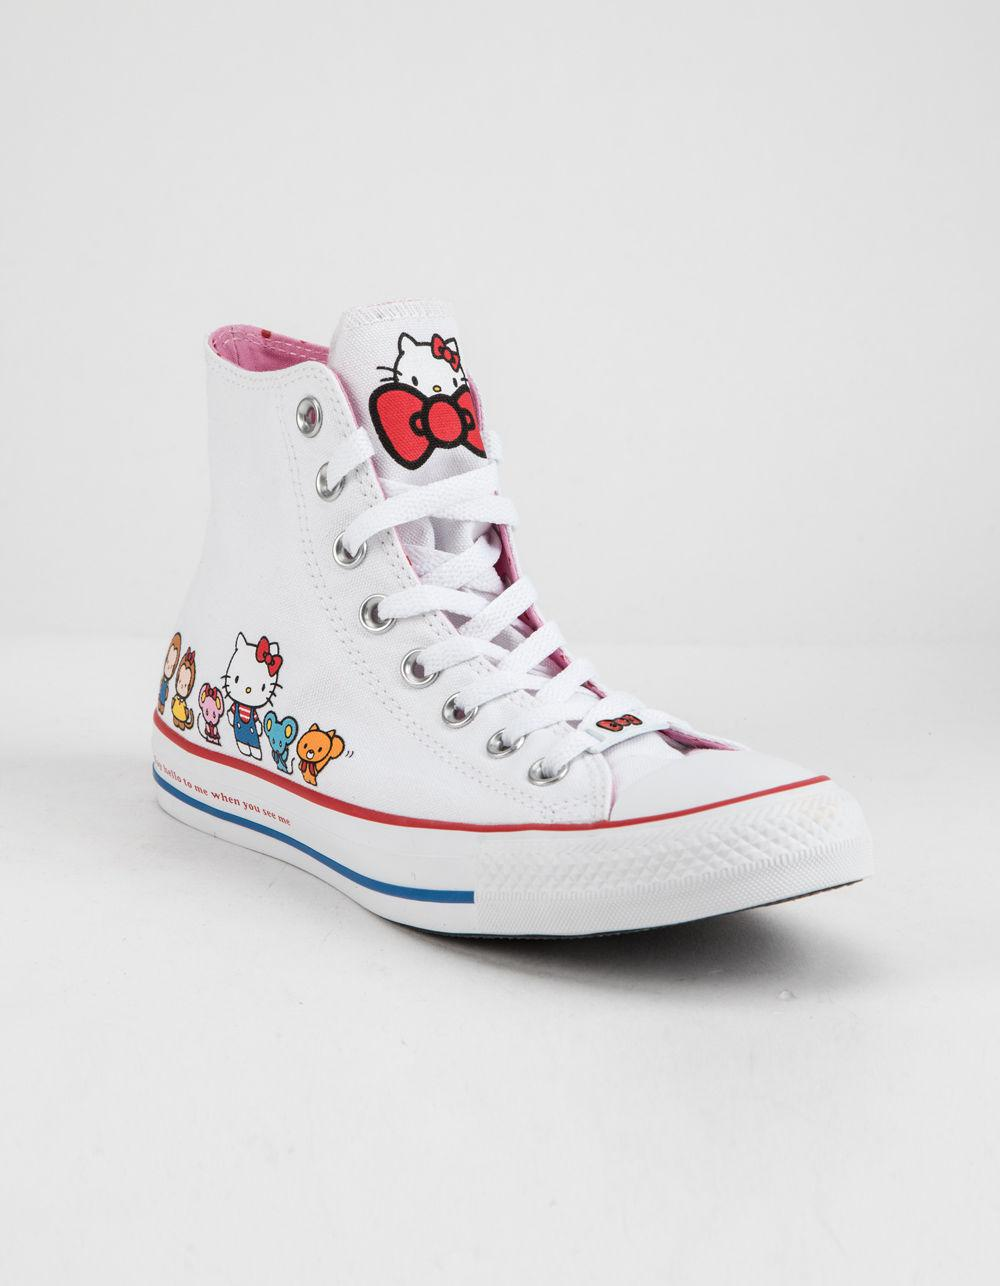 85ed6a116e Lyst - Converse X Hello Kitty Chuck Taylor All Star White   Prism ...